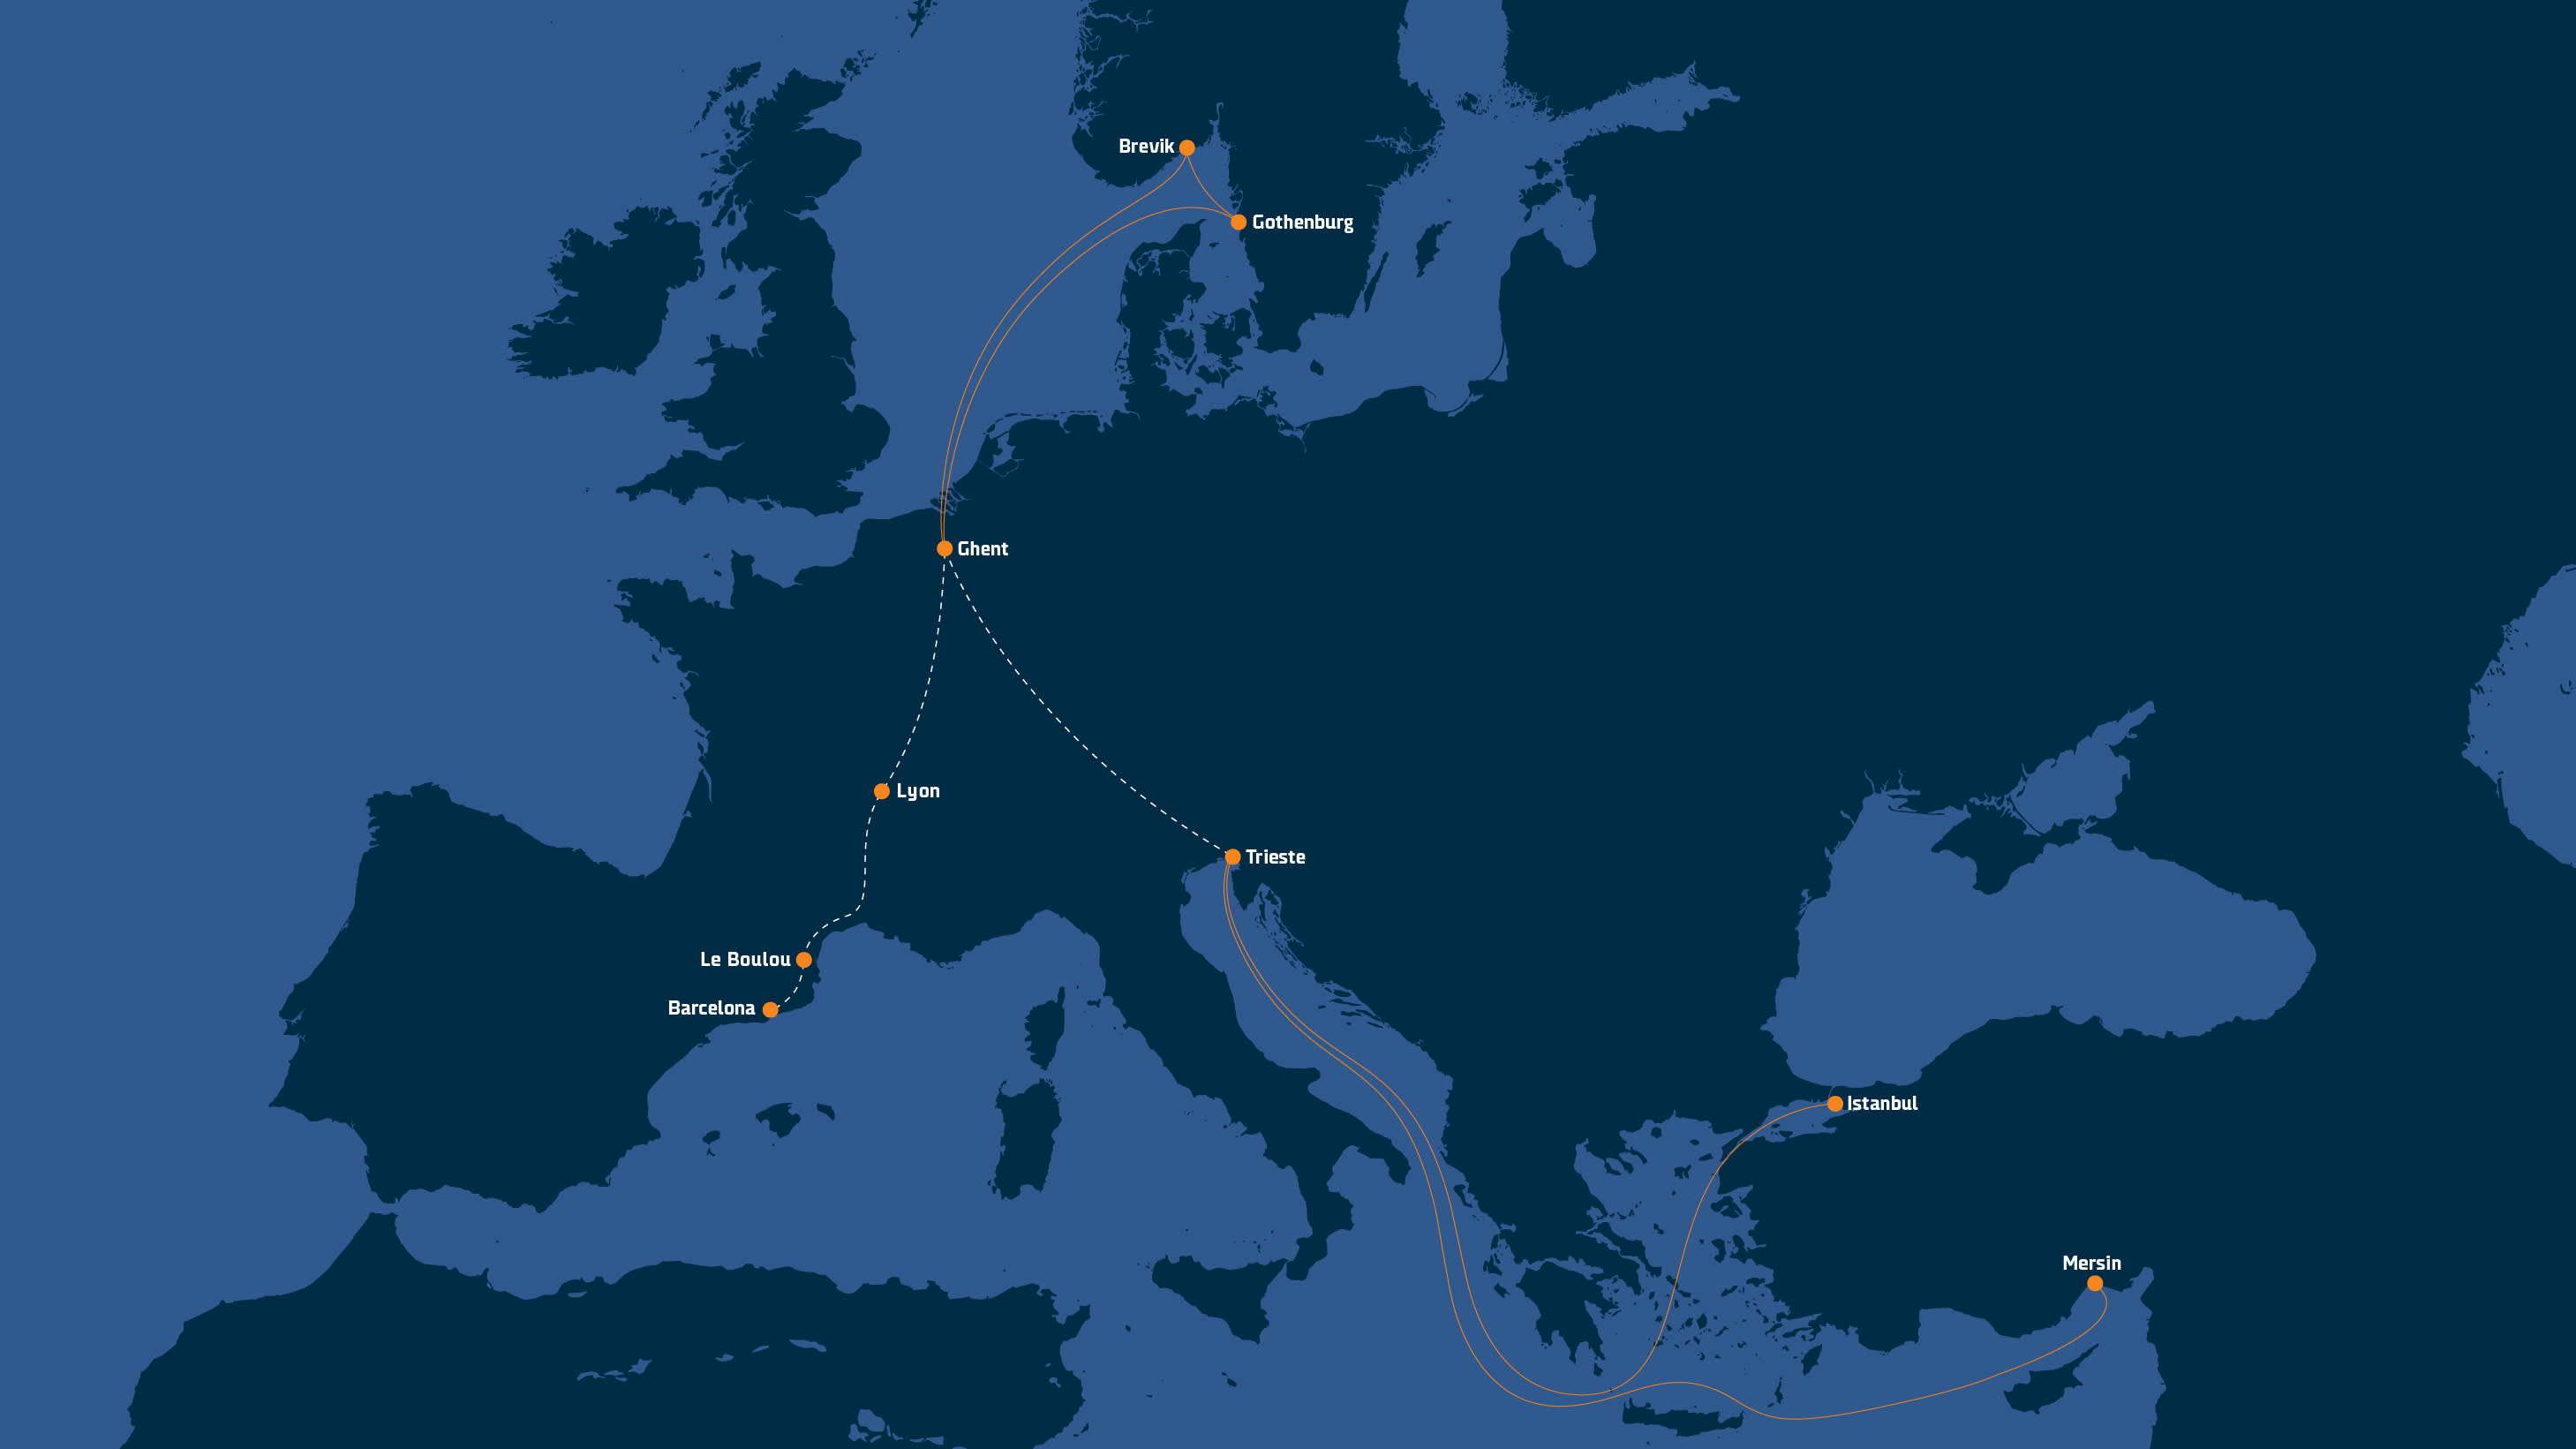 rail-ferry links between the Mediterranean and Sweden/Norway